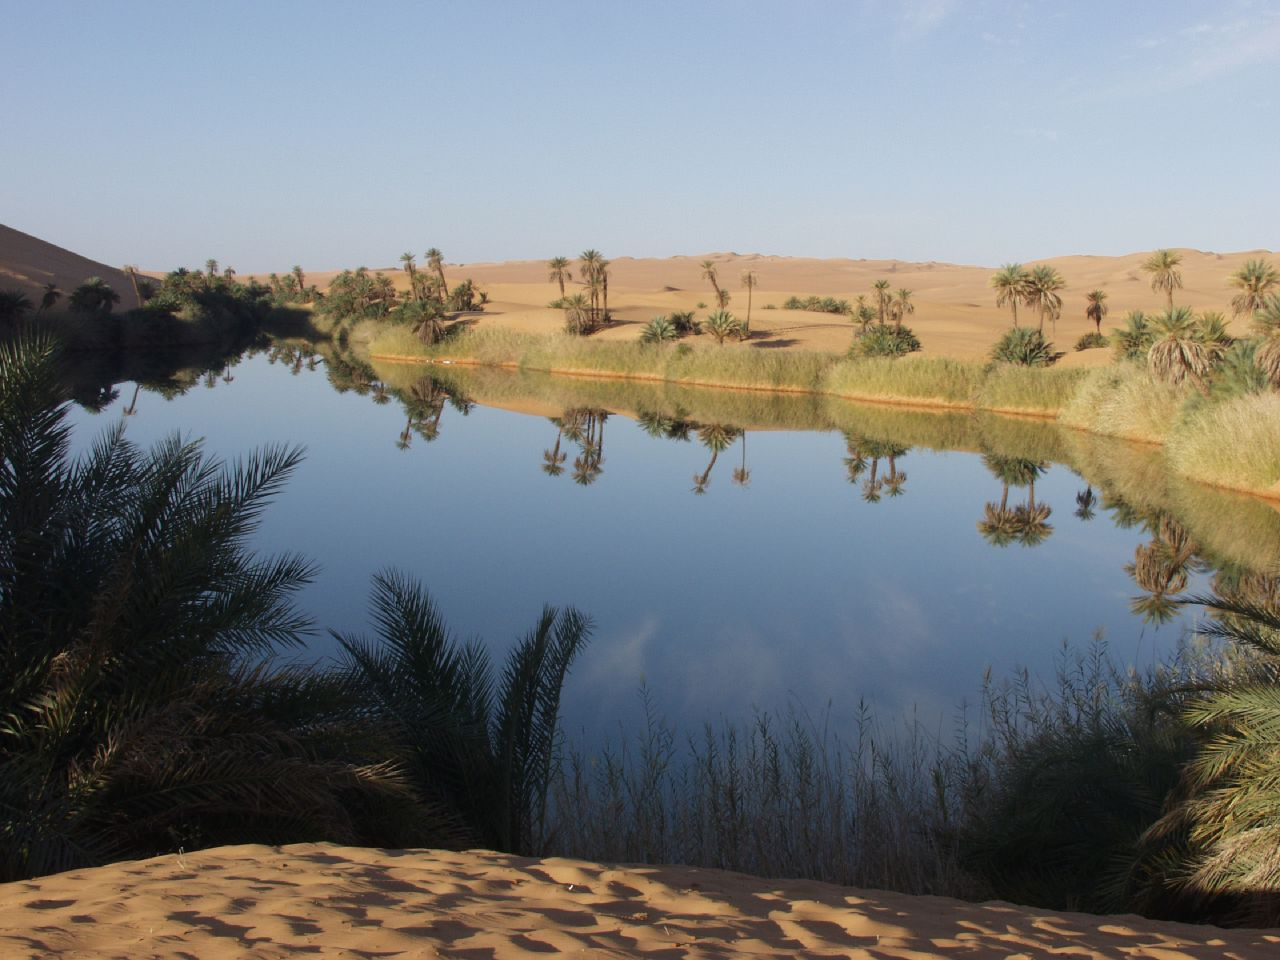 Libyen, der 58 Billionen € Wasser-Krieg Oase in Libyen … <small>Quelle: https://secure.wikimedia.org/wikipedia/commons/wiki/File:The_Mandara_Lakes.jpg</small>